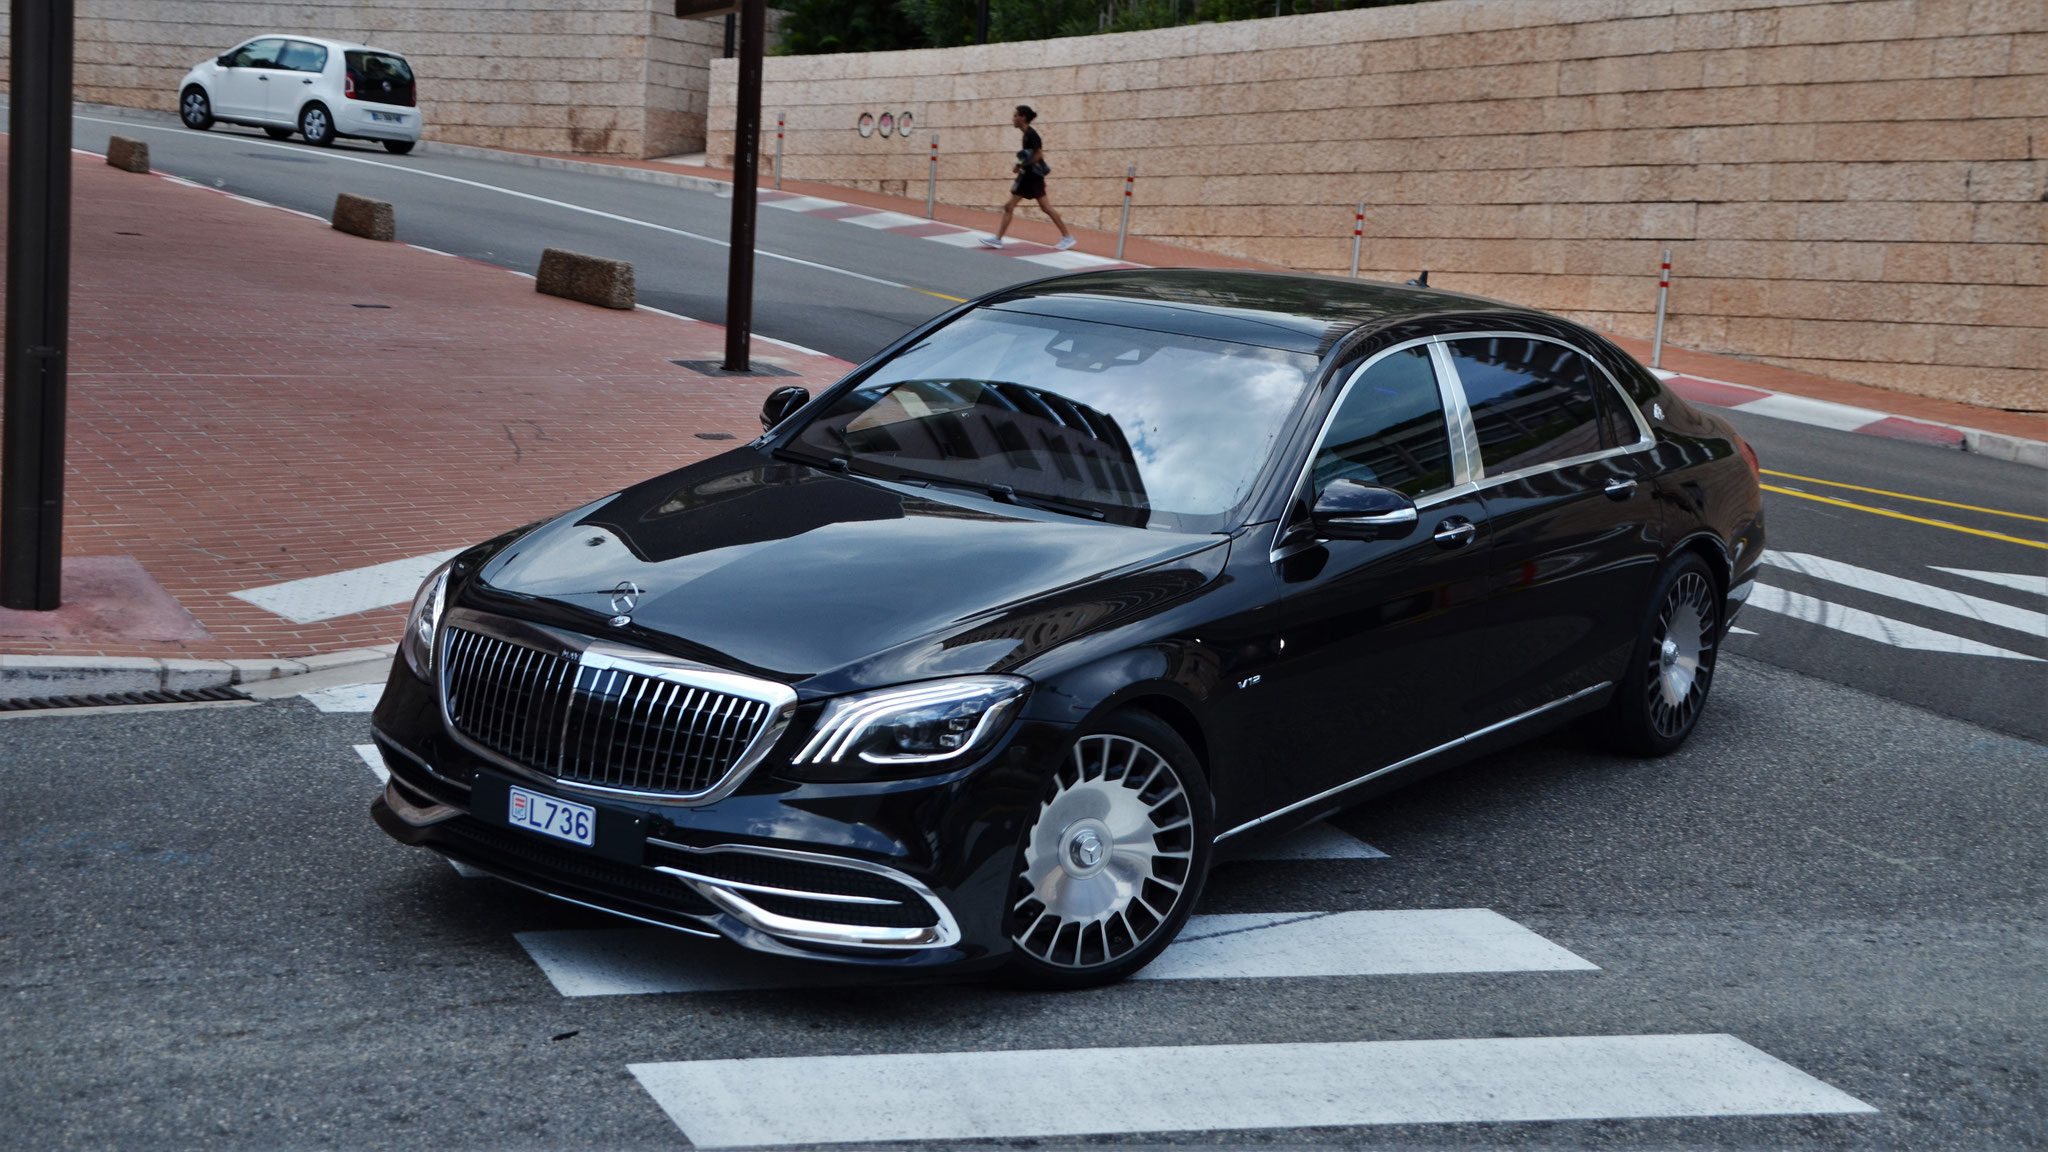 Mercedes Maybach S600 - L736 (MC)